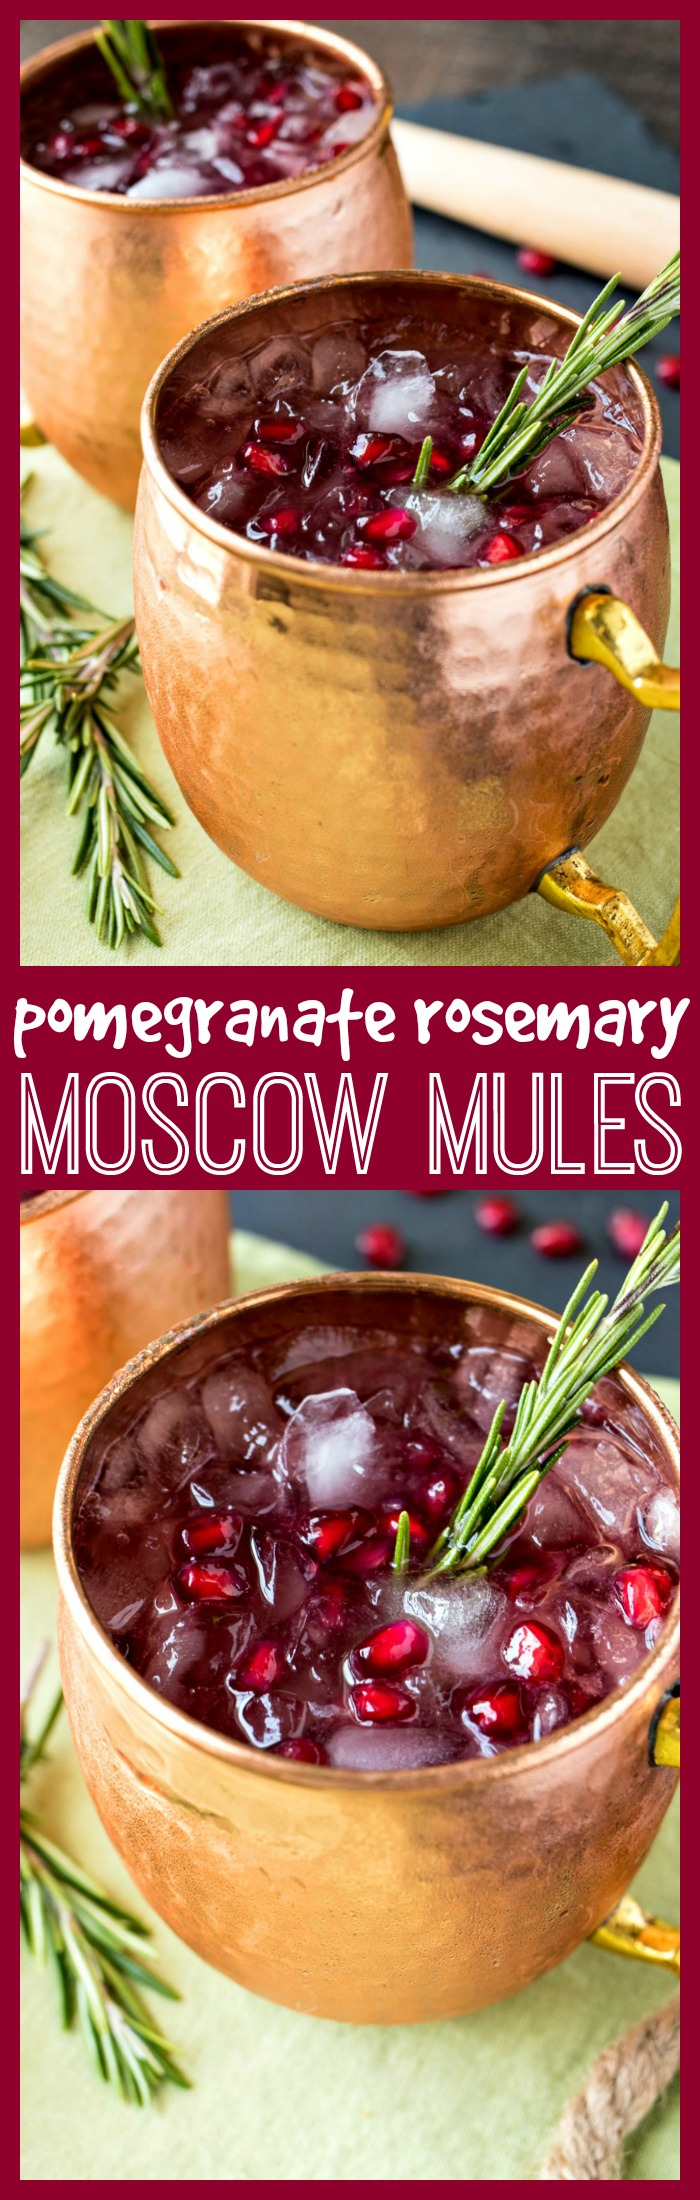 Pomegranate Rosemary Moscow Mule photo collage